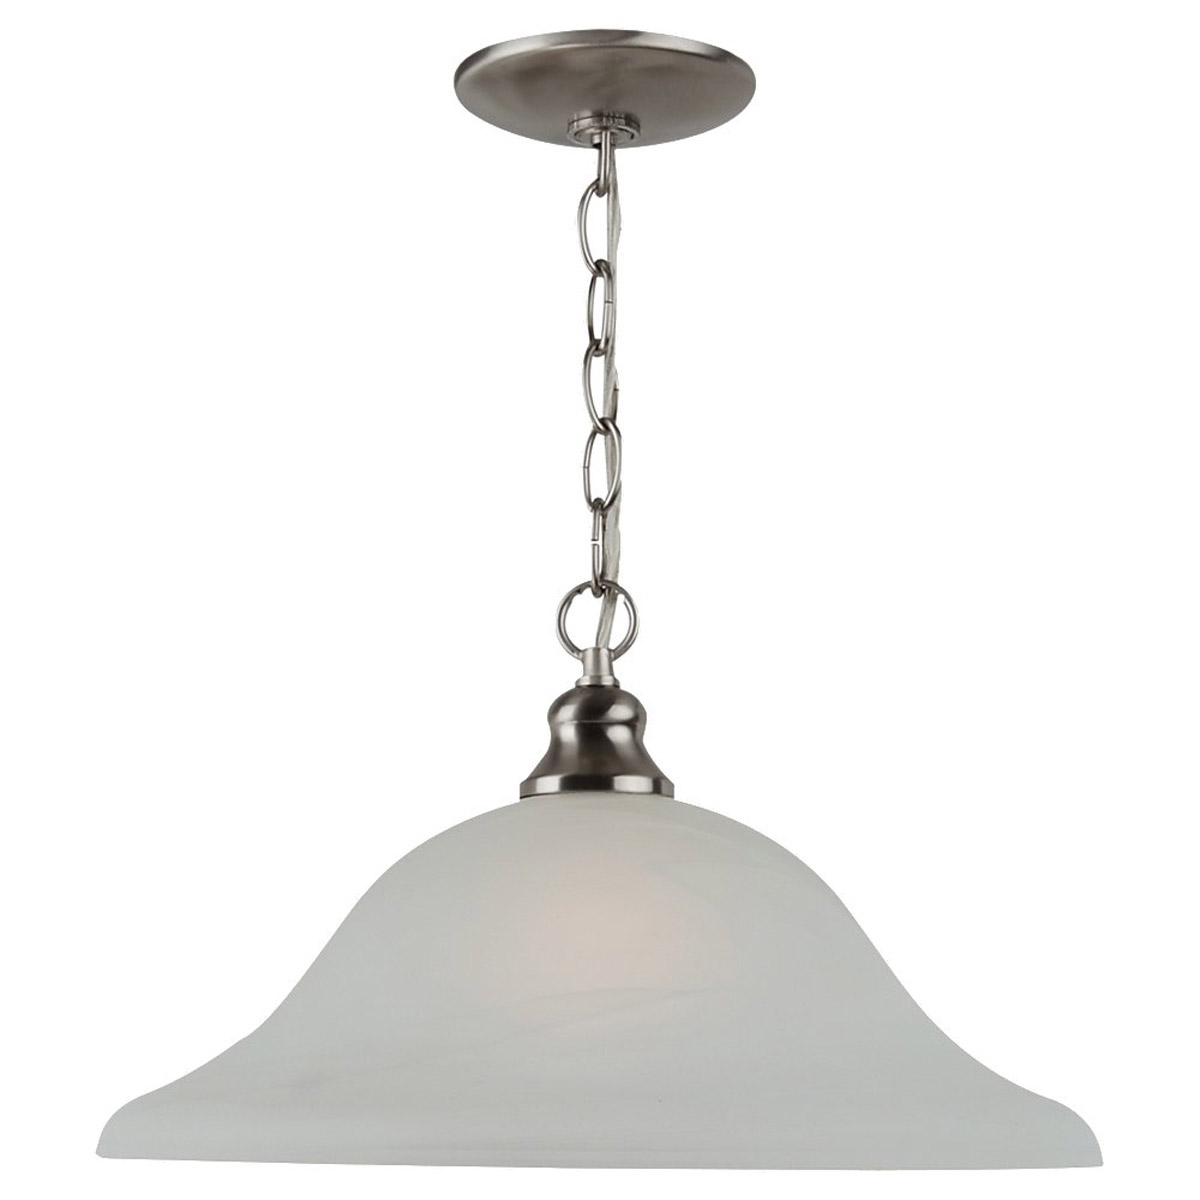 Sea Gull Lighting Windgate 1 Light Pendant in Brushed Nickel 65940-962